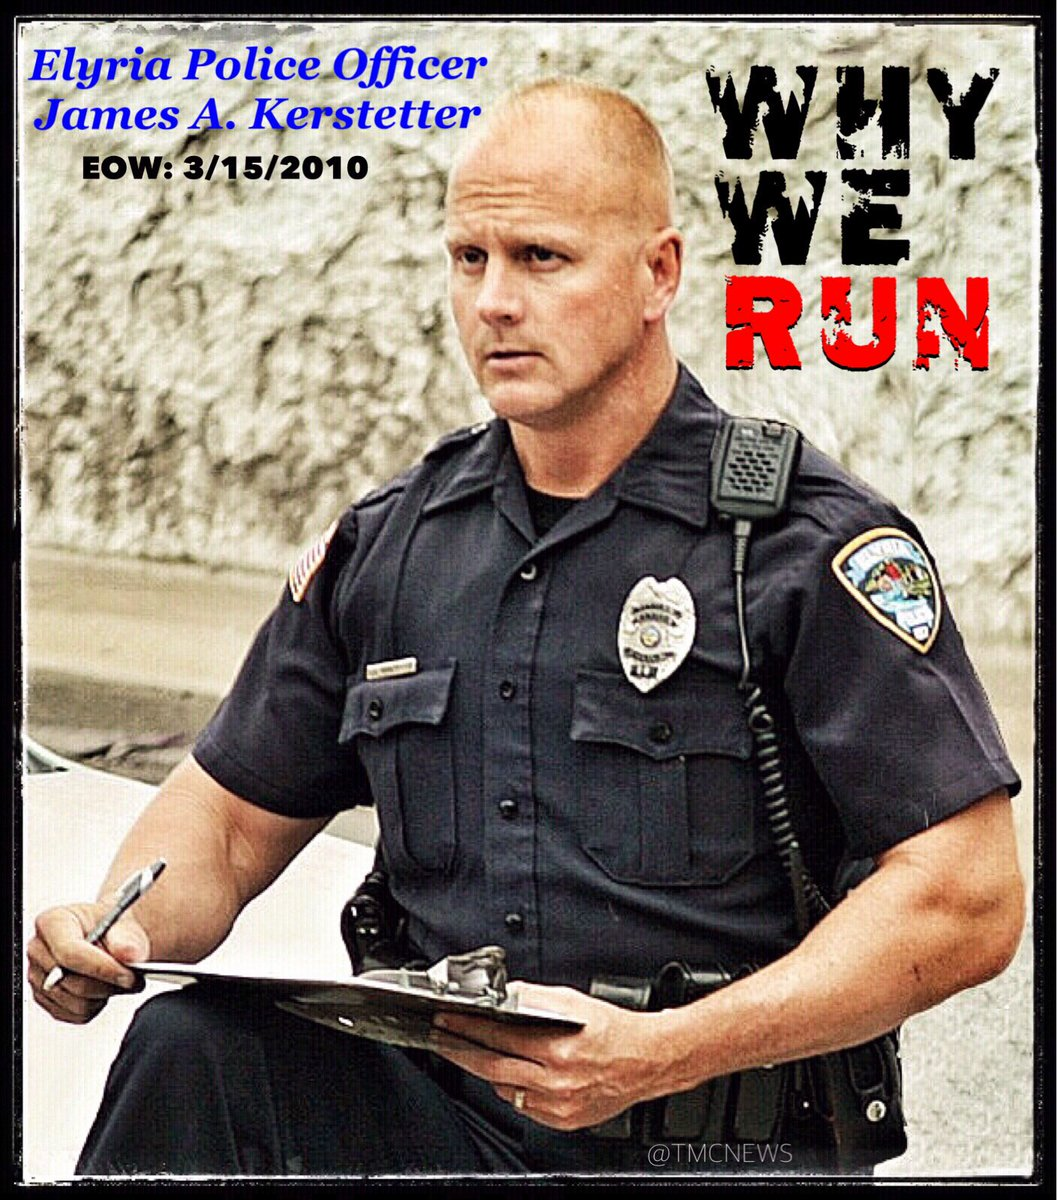 #Police #OfficerJim Kerstetter was shot &amp; killed in the #LineOfDuty on March 15, 2010.  We run to honor his sacrifice &amp; to never forget <br>http://pic.twitter.com/m8ohqBq6Lp